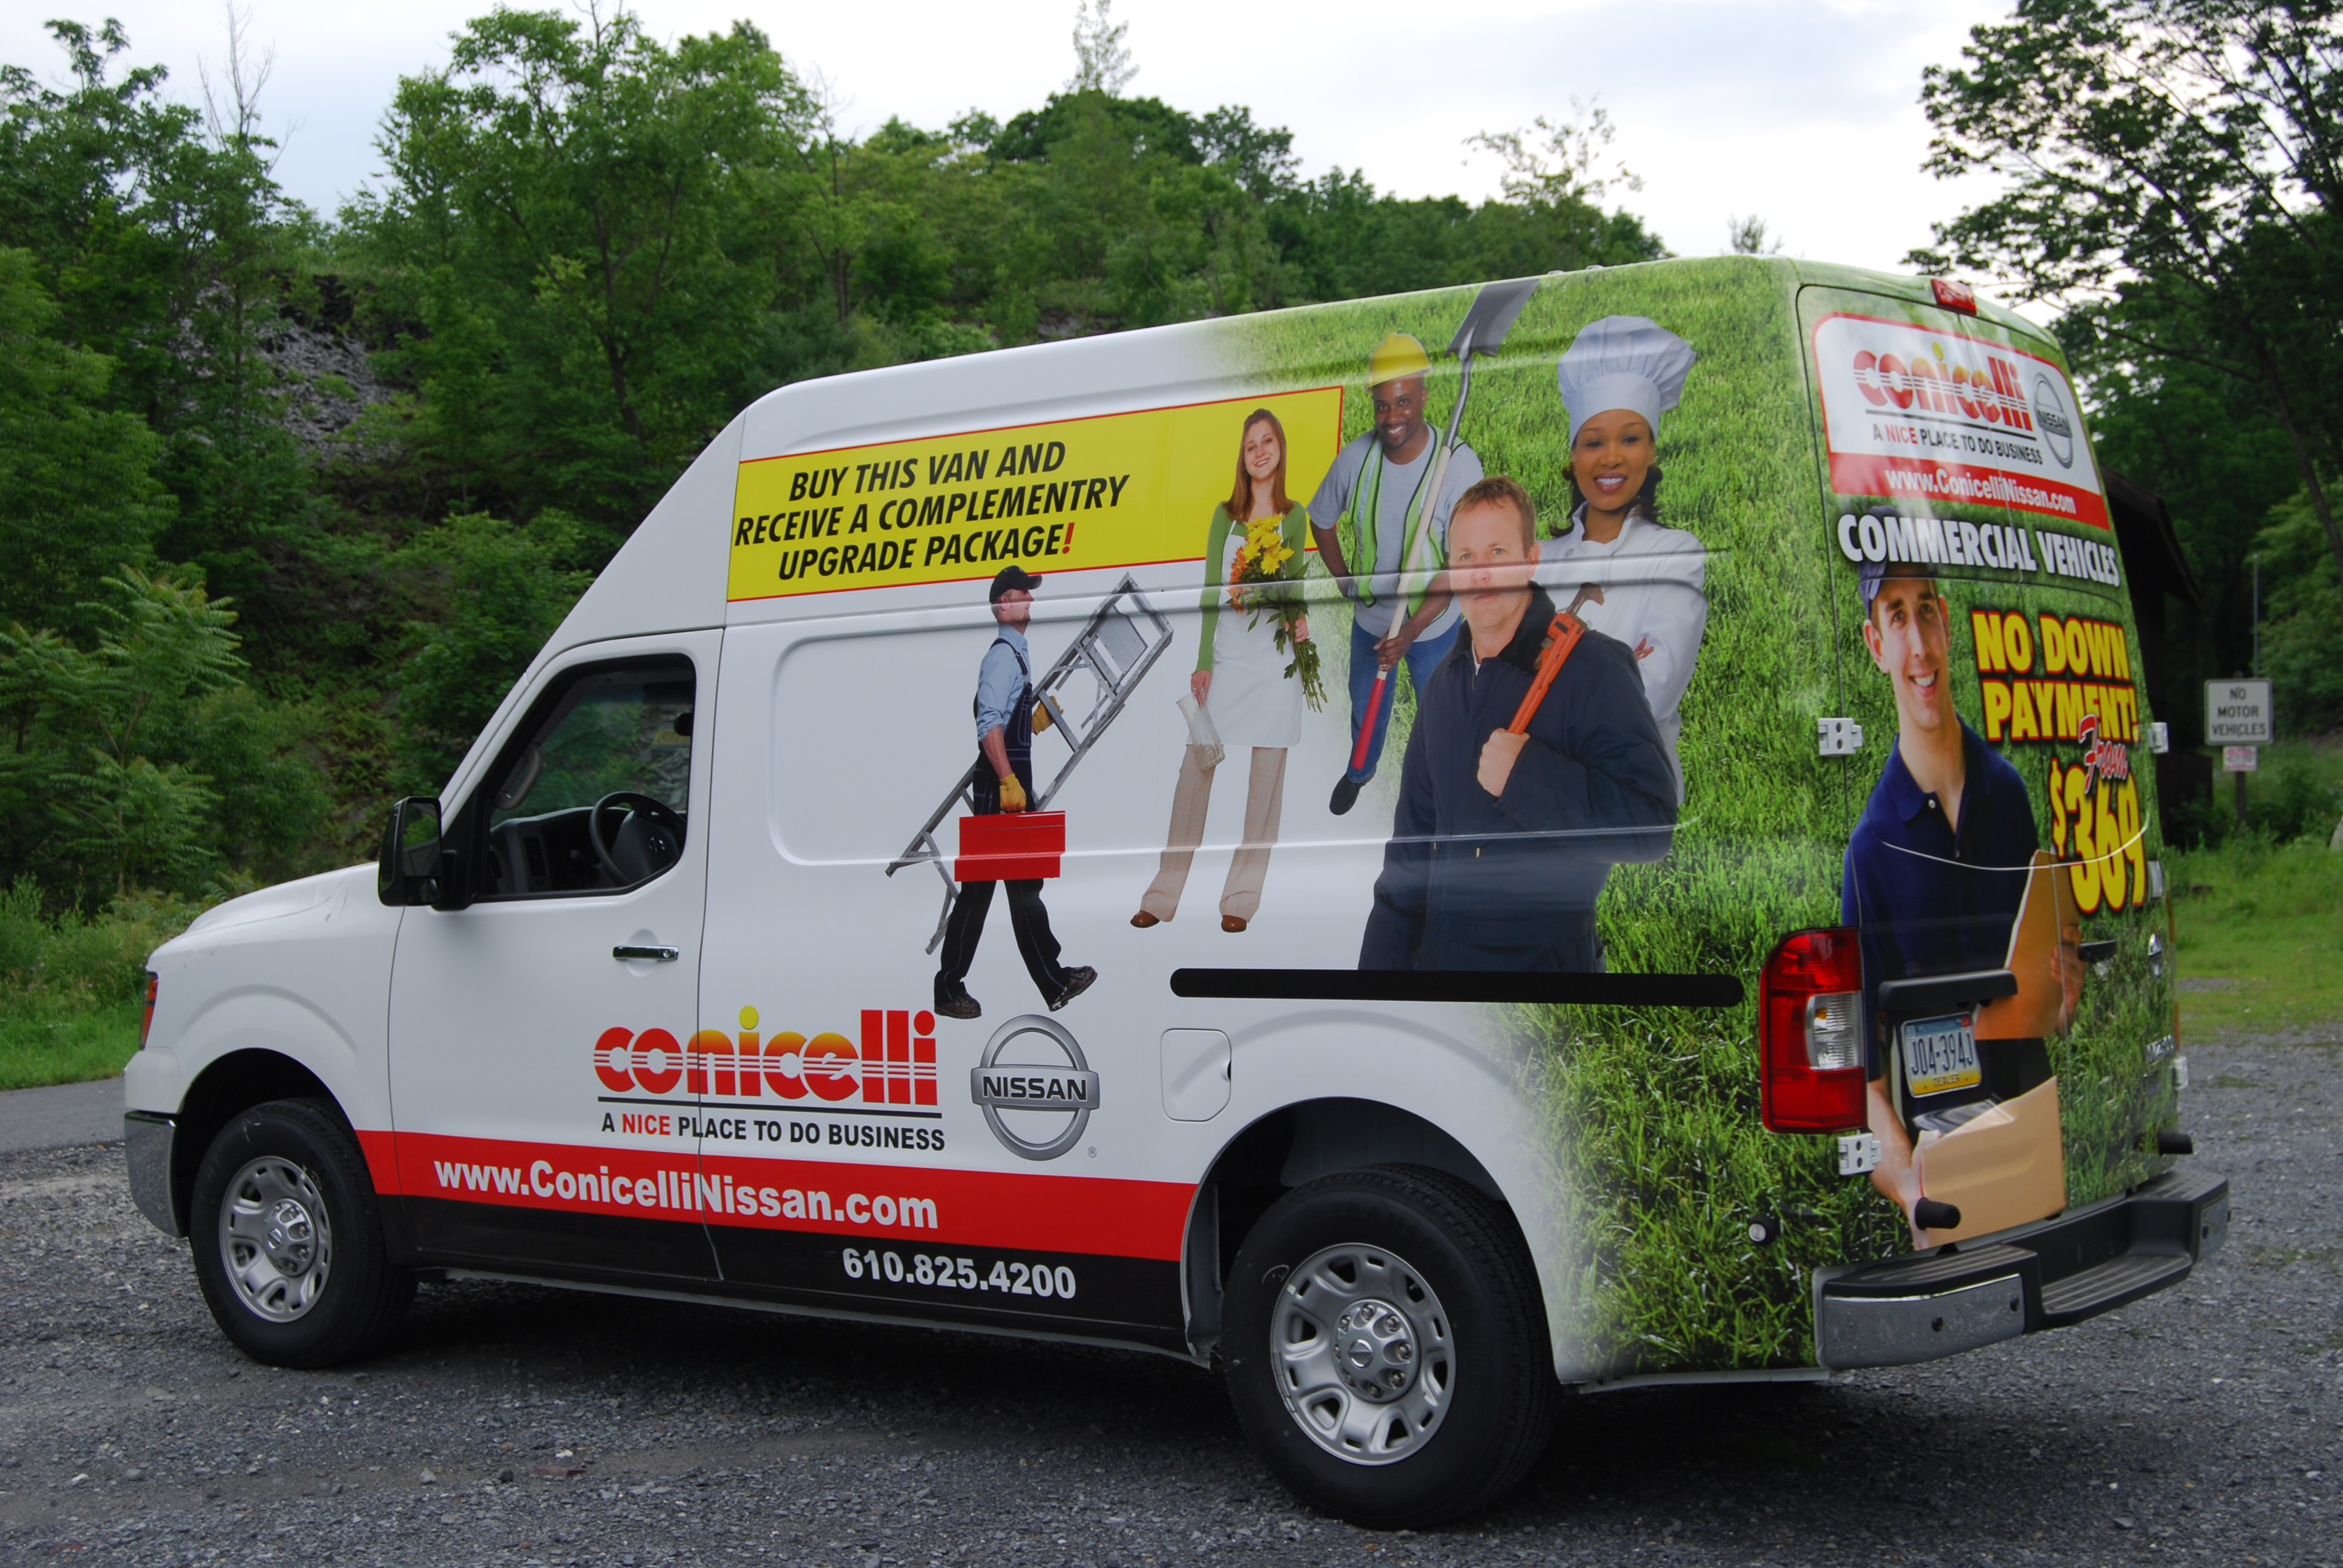 Conicelli Nissan Cargo Wrap Advertising For Large Auto